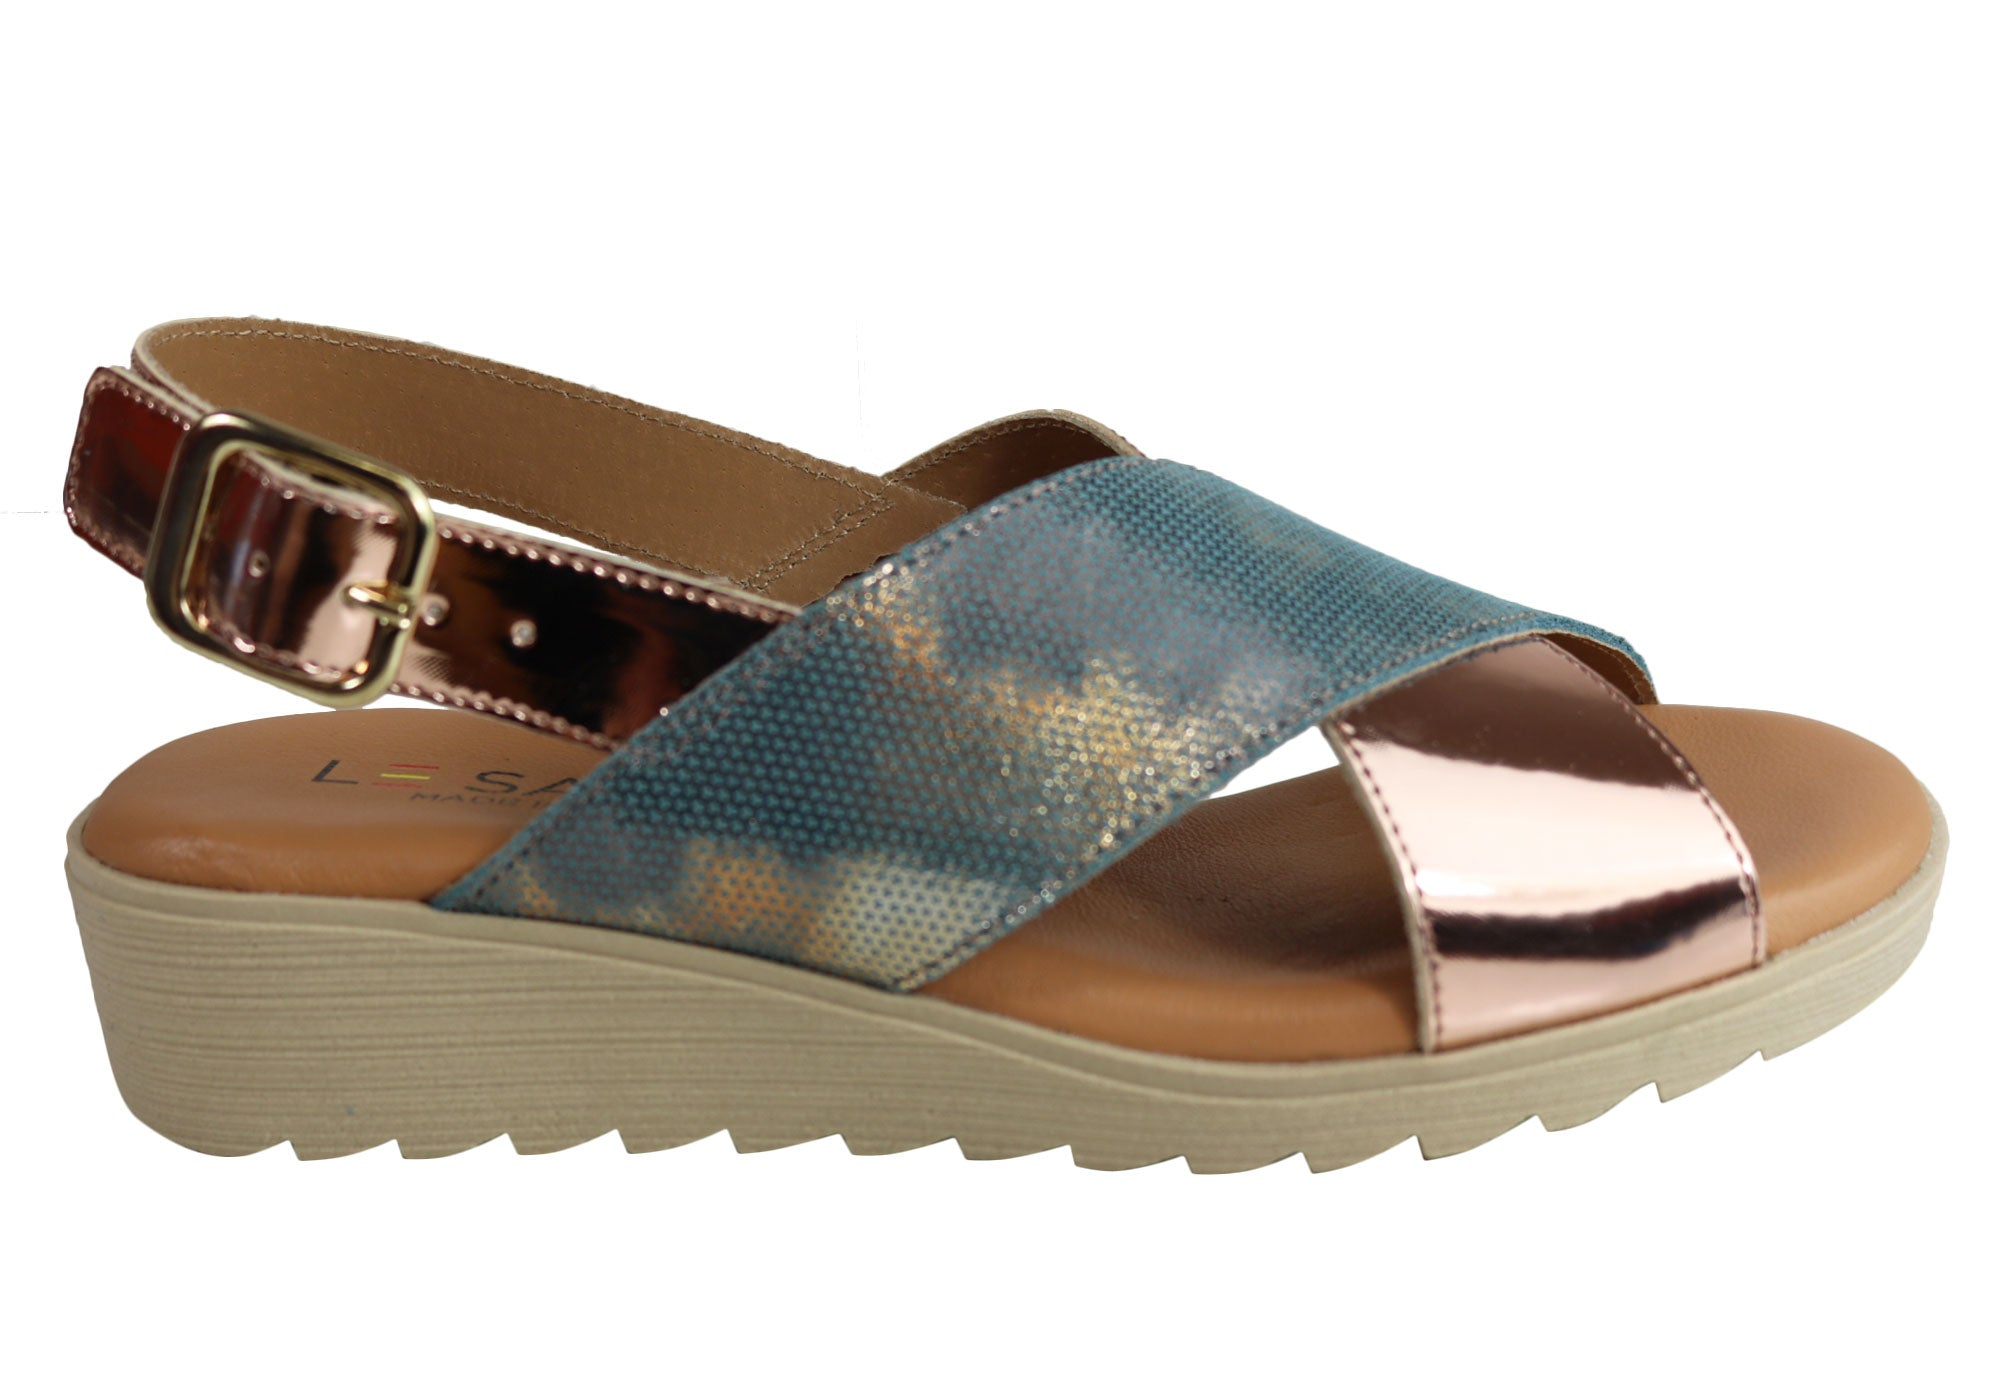 f3f448bfd7f New Le Sansa By Cc Resorts Paris Womens Leather Sandals Made In ...